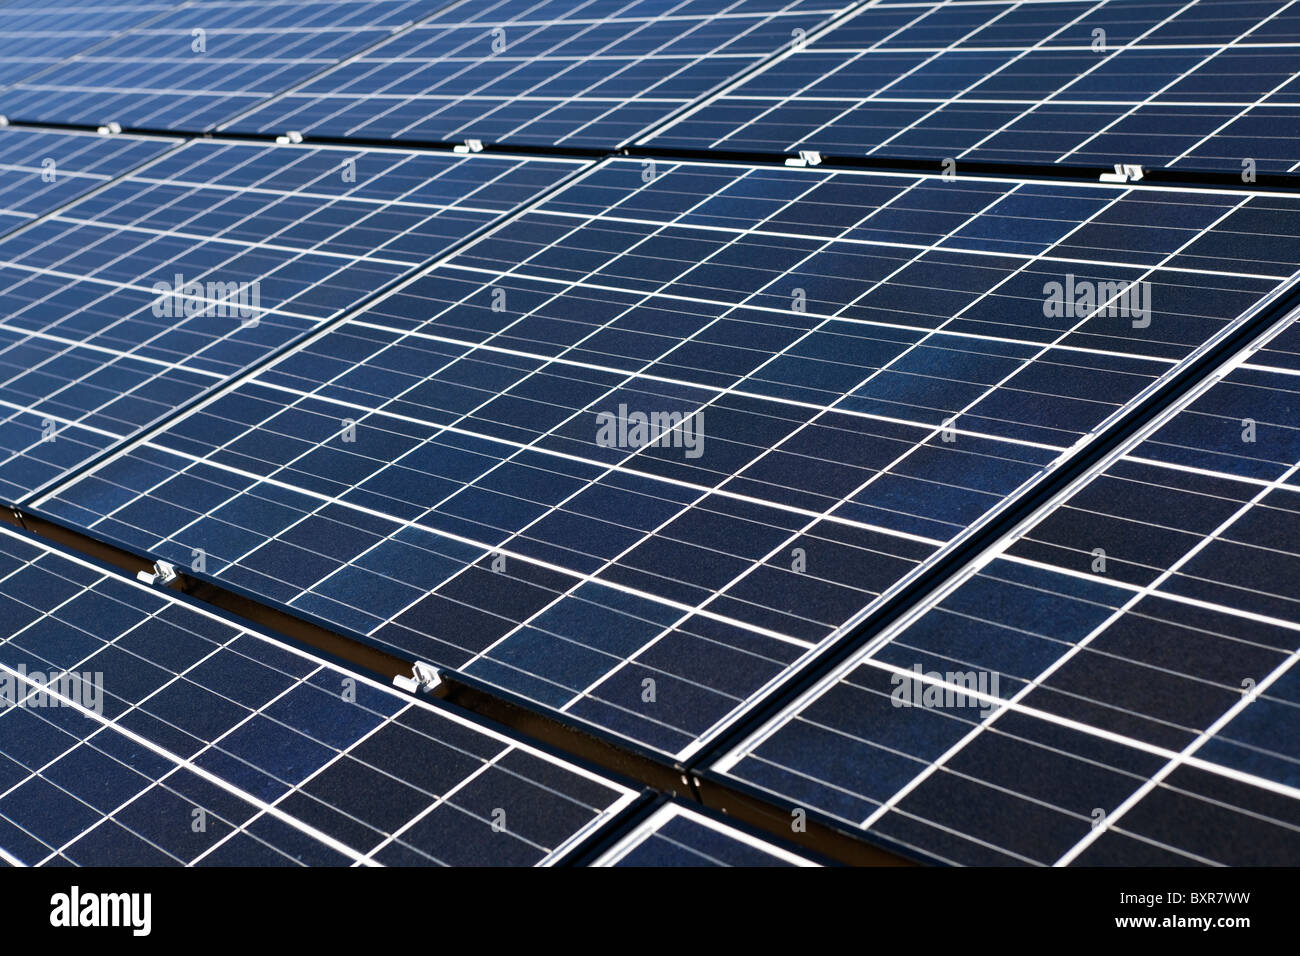 New large solar array in Nevada's mojave desert. - Stock Image